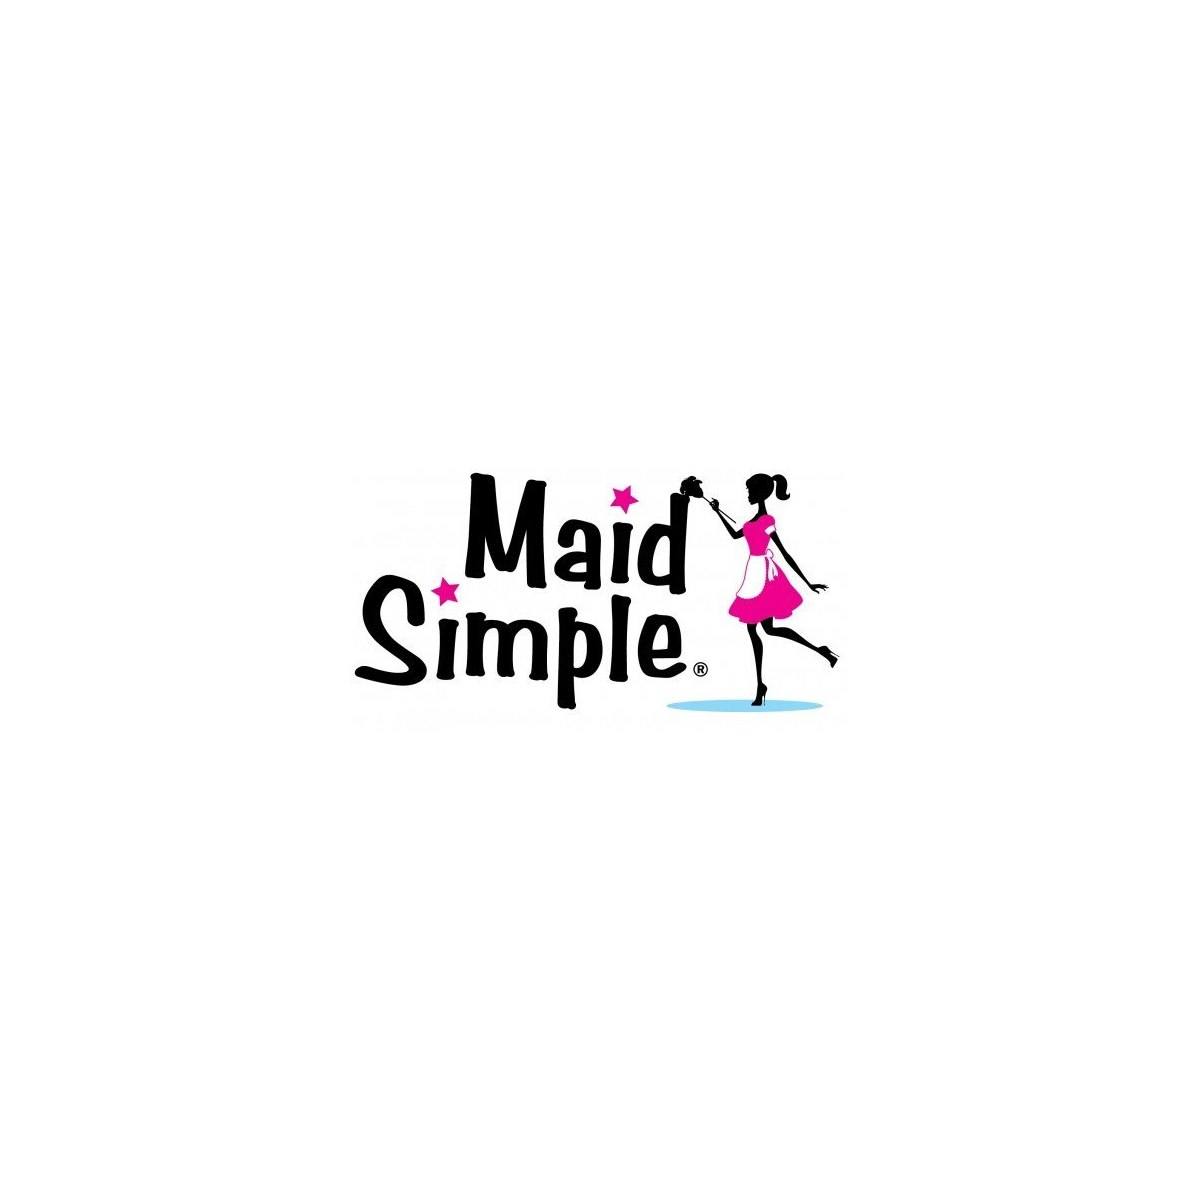 Where to Buy Maid Simple Cleaning Products